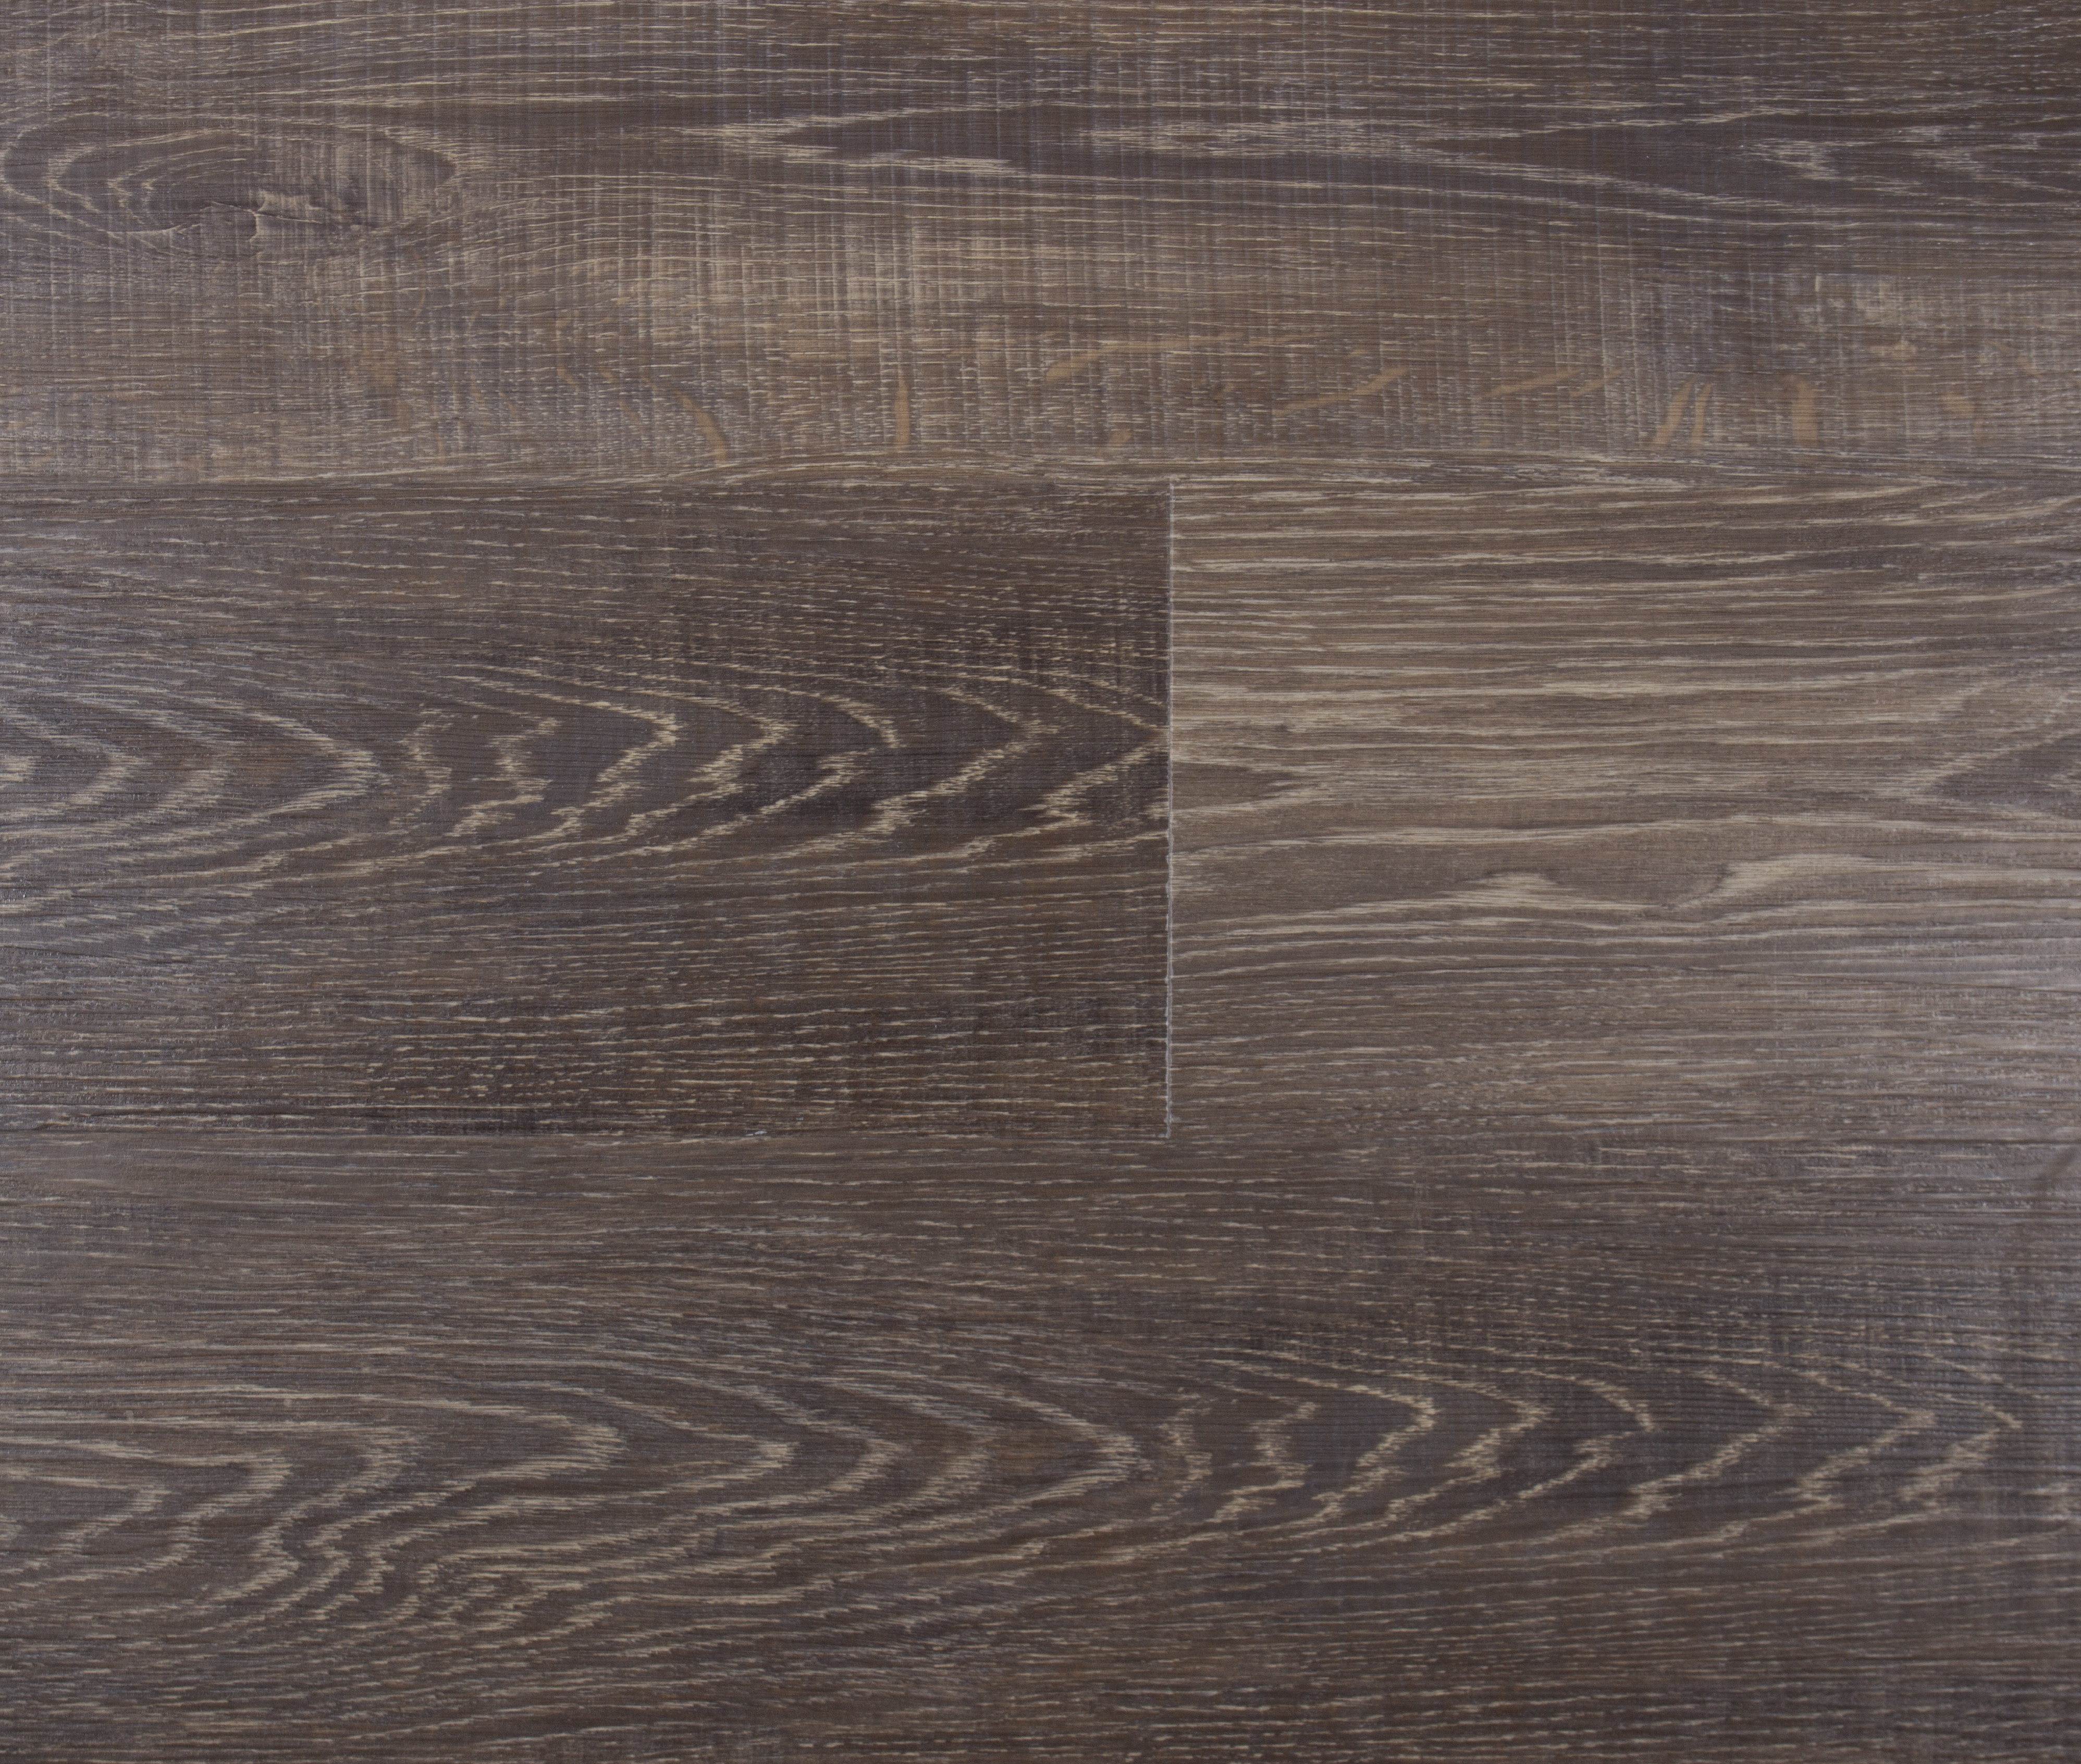 hardwood flooring in bakersfield ca of flooring liquidators bakersfield expert advice bellawood hardwood with flooring liquidators bakersfield luxury vinyl coretec kosmos rhodes oak